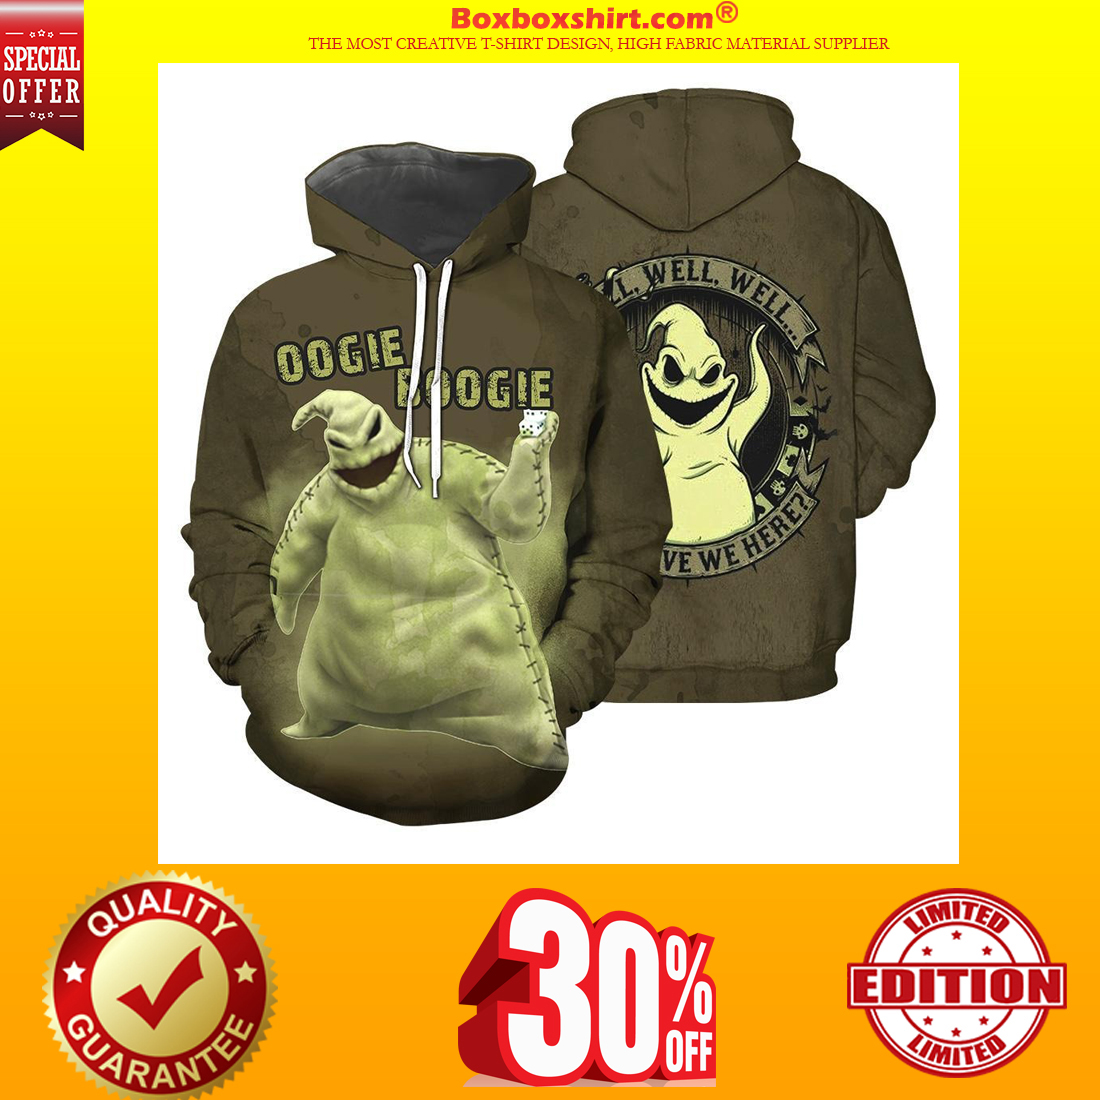 Oogie Boogie 3d shirt and hoodie